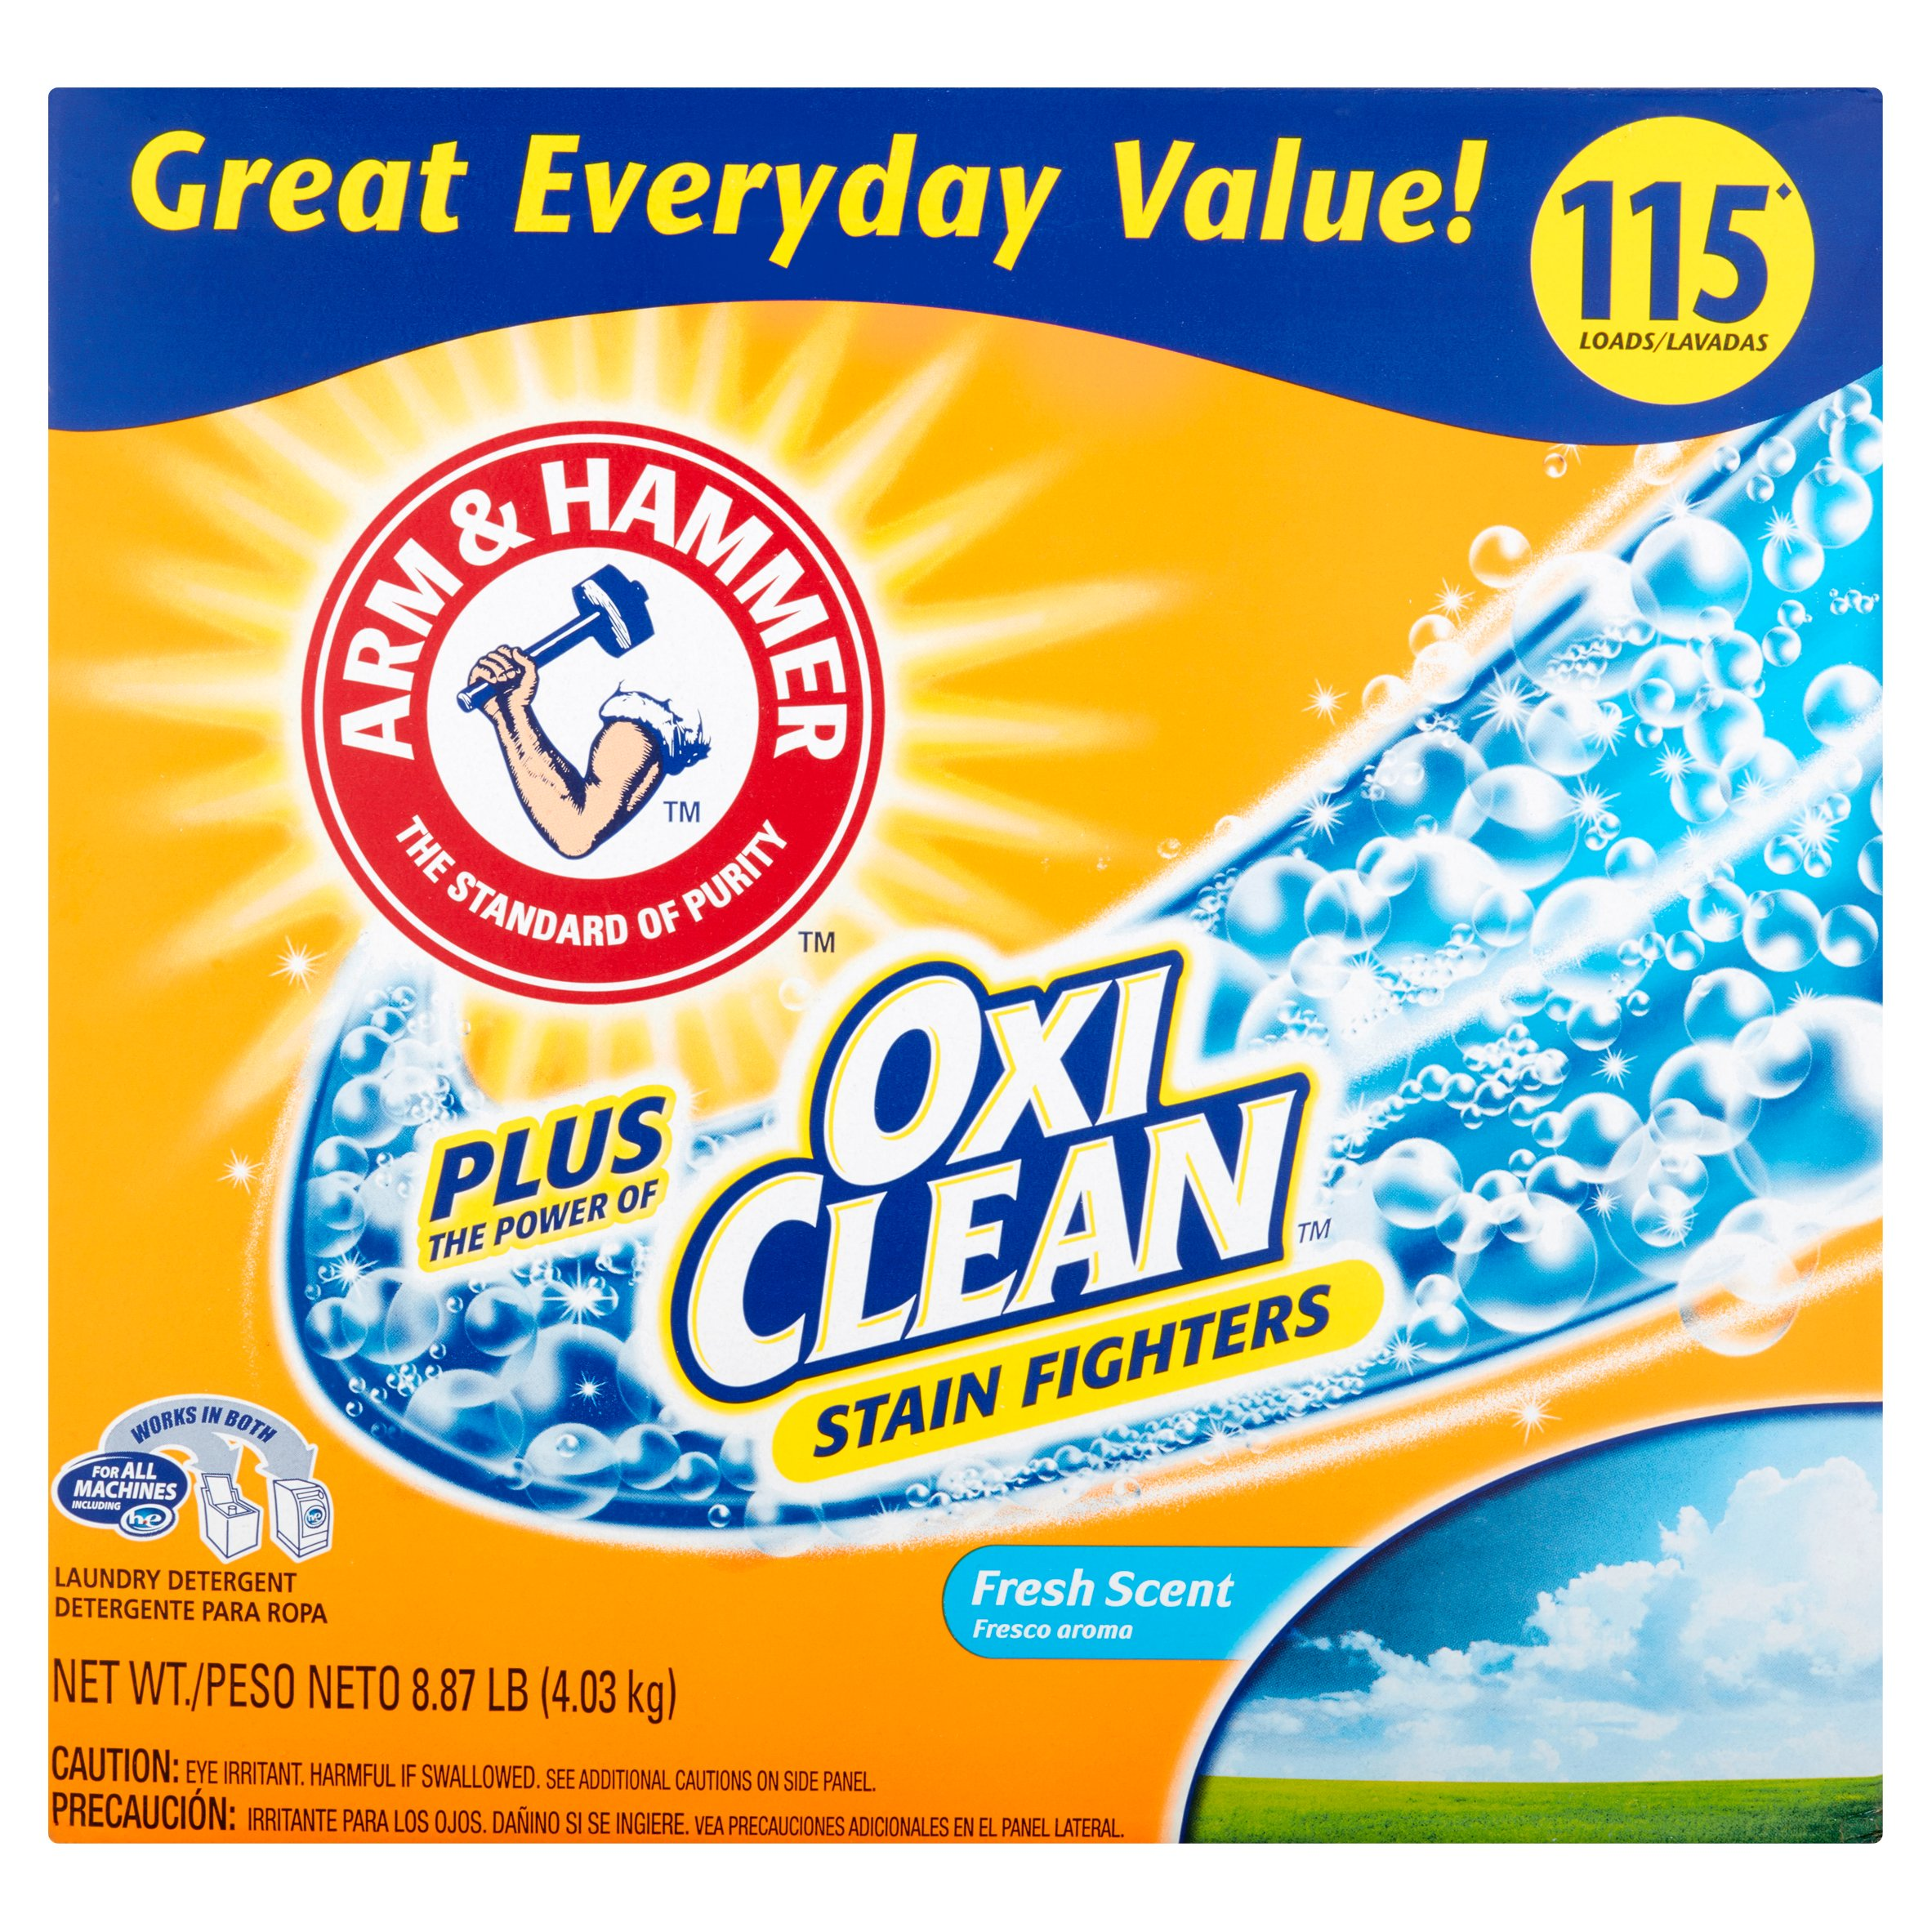 Arm & Hammer Plus OxiClean Stain Fighters Fresh Scent Powder Laundry Detergent, 8.86 lbs